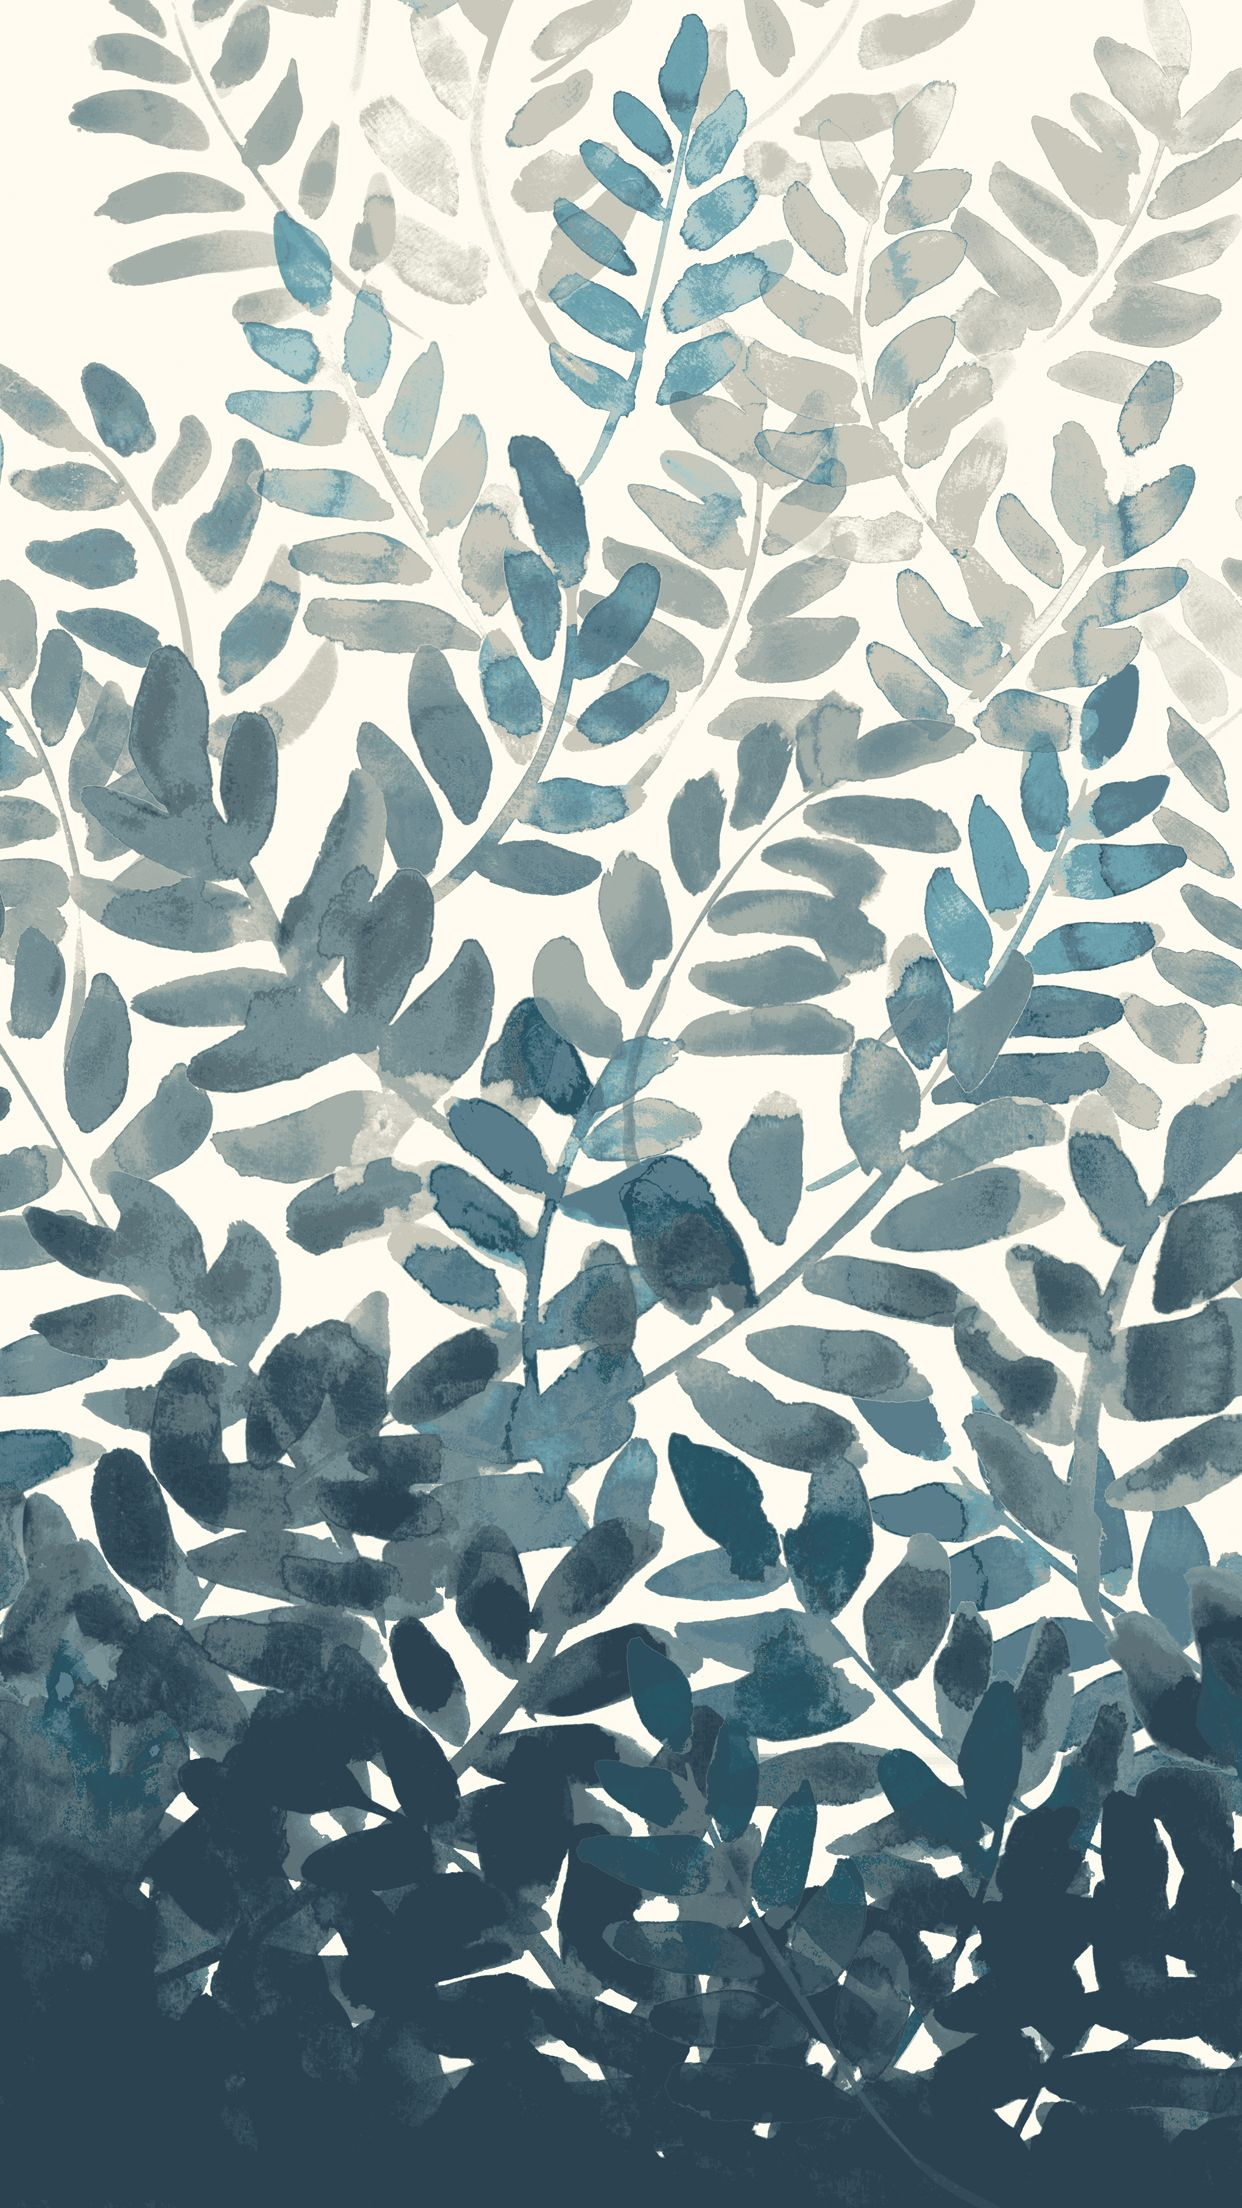 west elm - watercolor fern mobile iphone wallpaper download